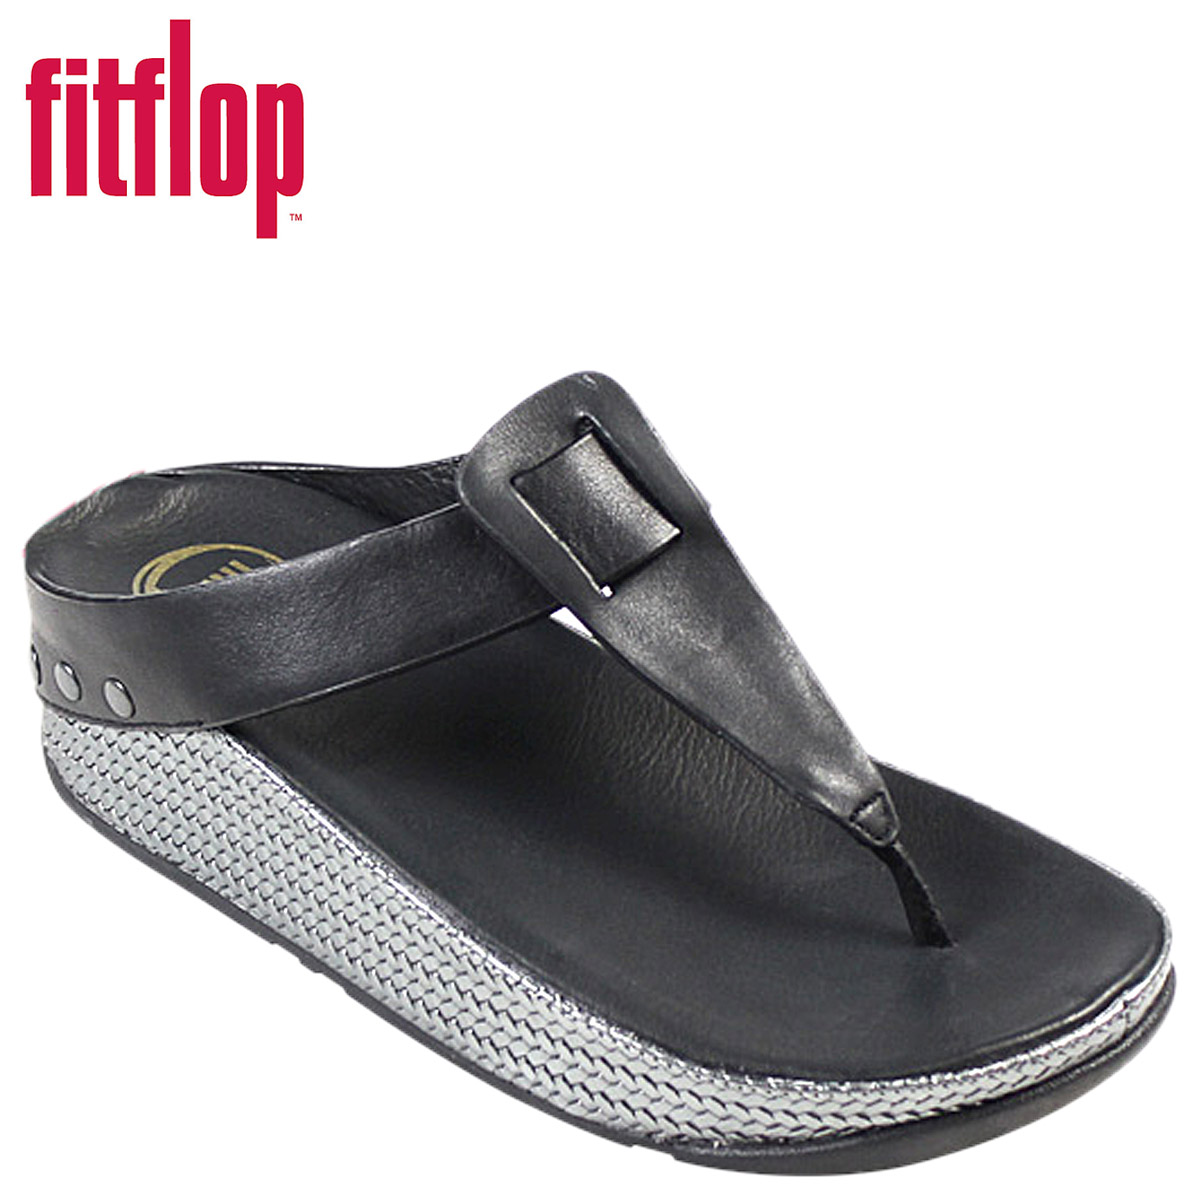 72f86fcdf Point 2 x fit flops FitFlop women s Ibiza sandal IBIZA leather thong sandals  in 2014